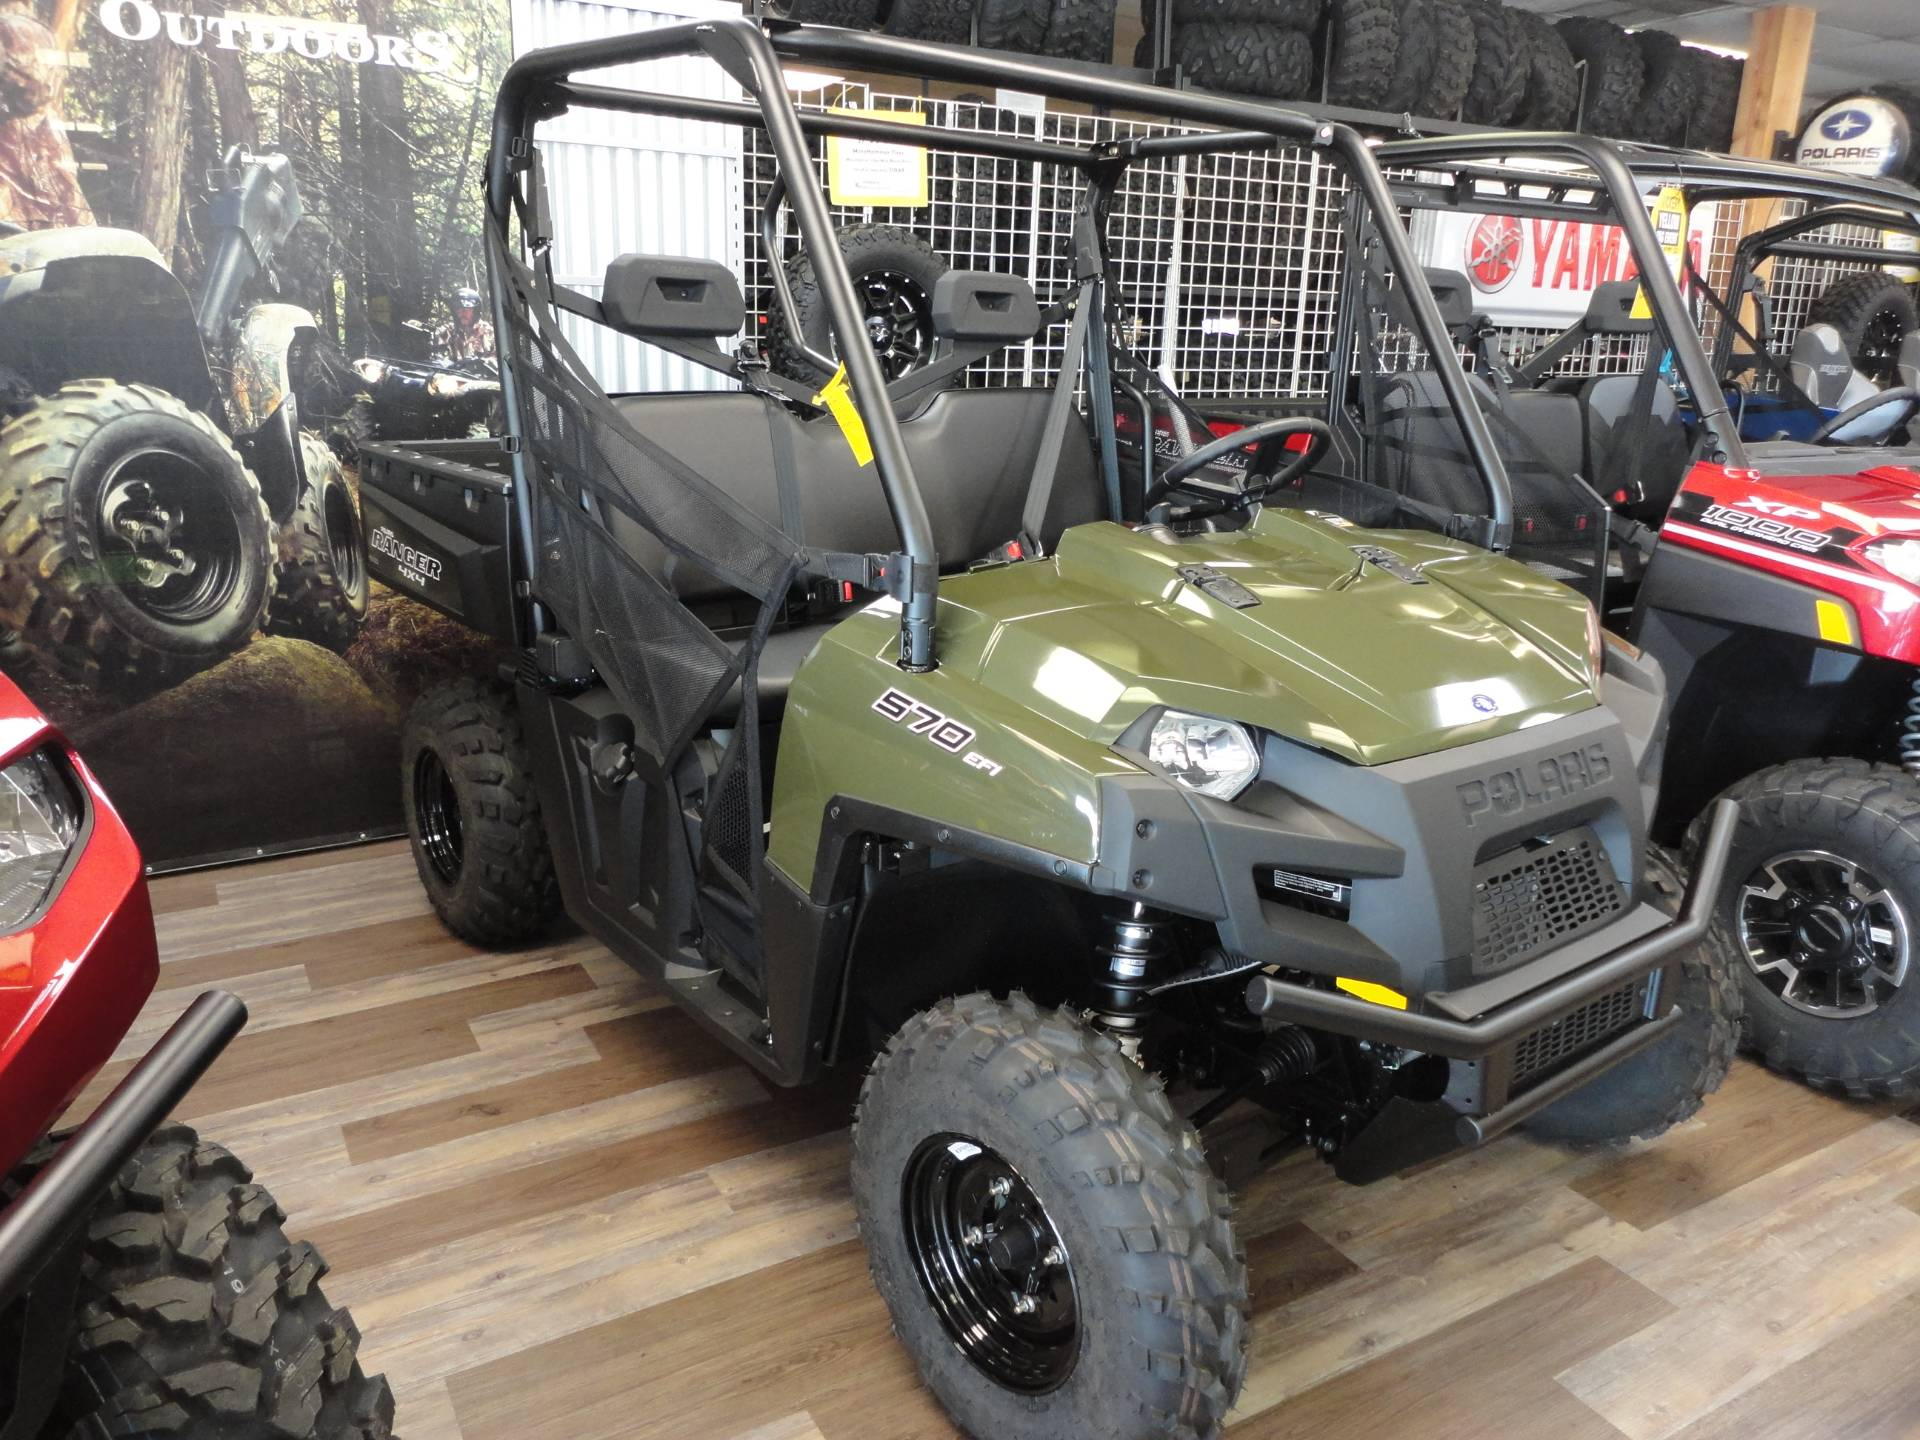 2020 Polaris Ranger 570 in Denver, Colorado - Photo 2